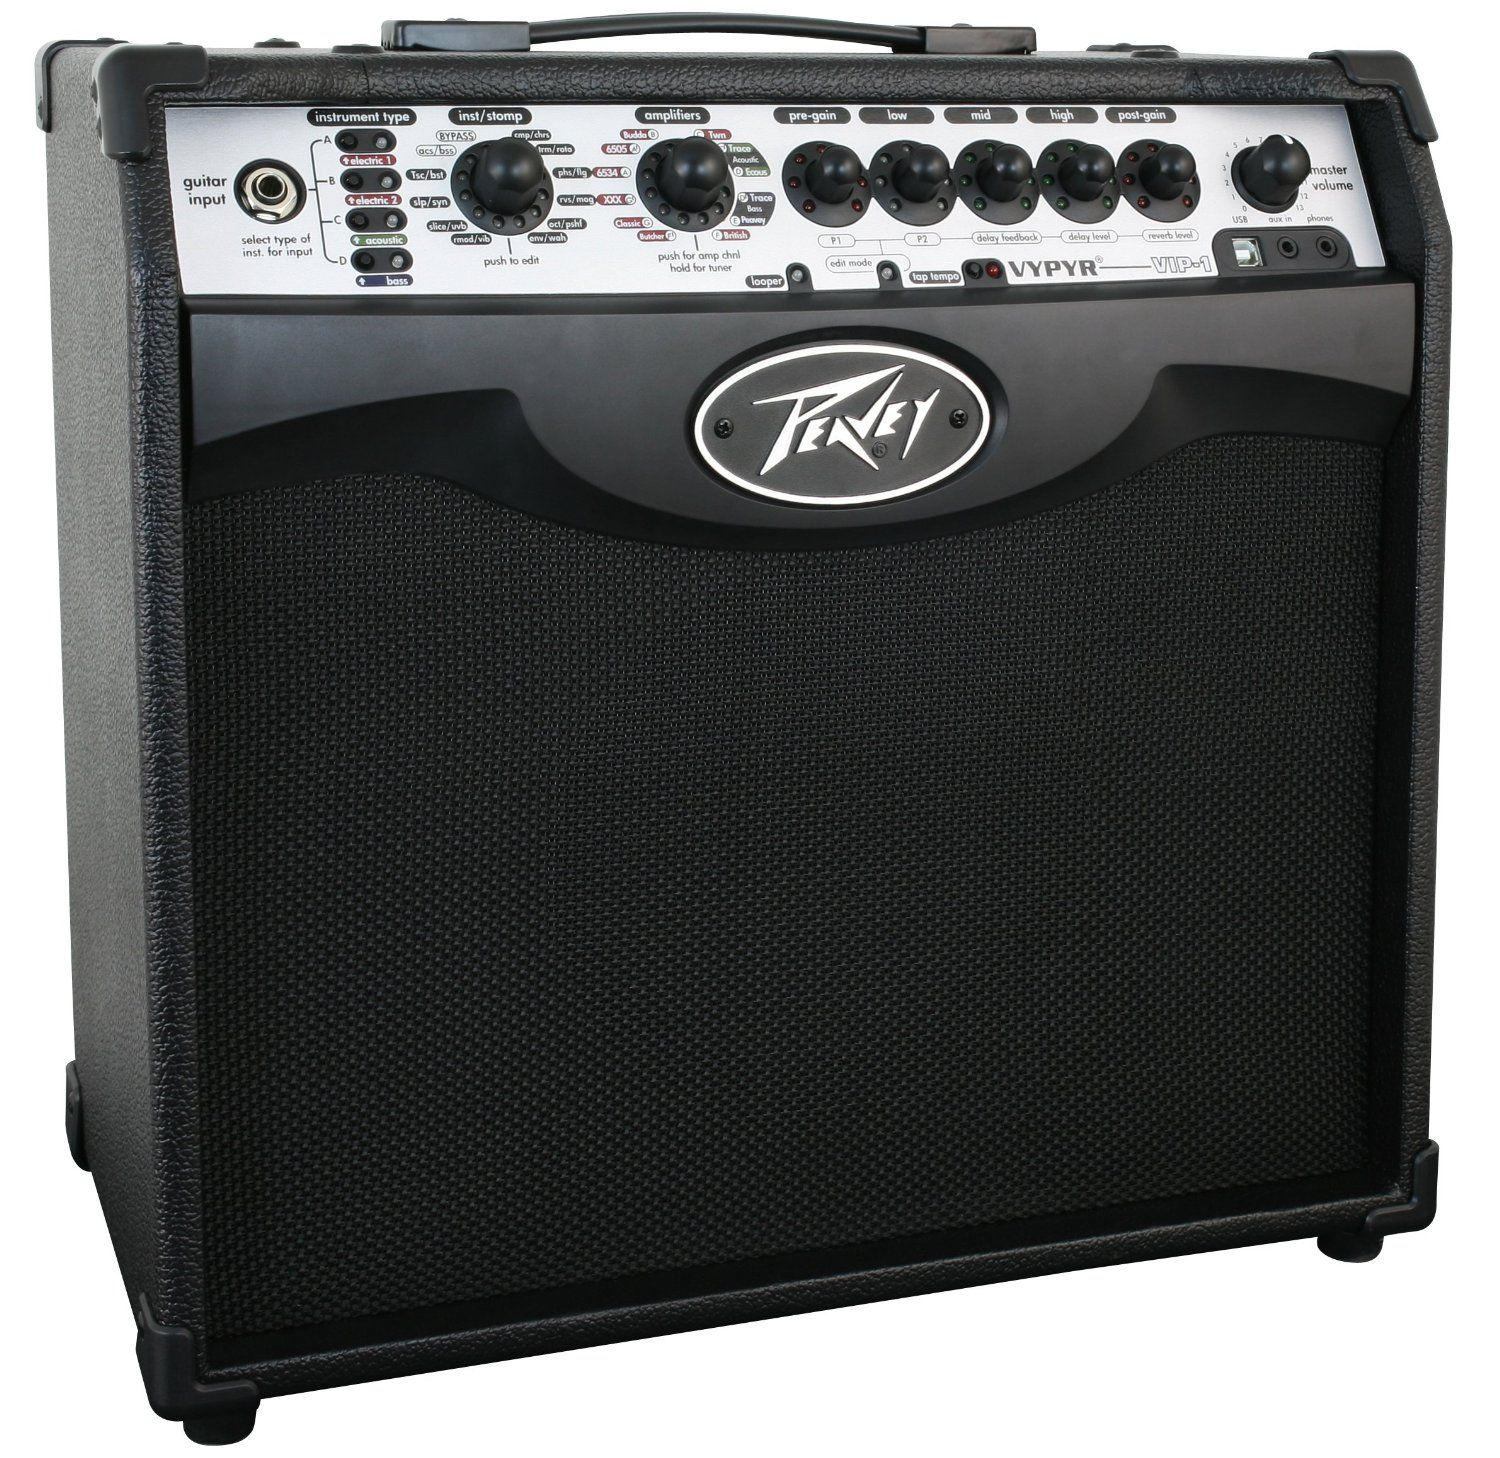 You Can Find A Selection Of Peavey Amps Including This Peavey Vypyr Vip 1 20 Watt Modeling Instrumental Amplifier At Jsmartmusic Com Peavey Amp Guitar